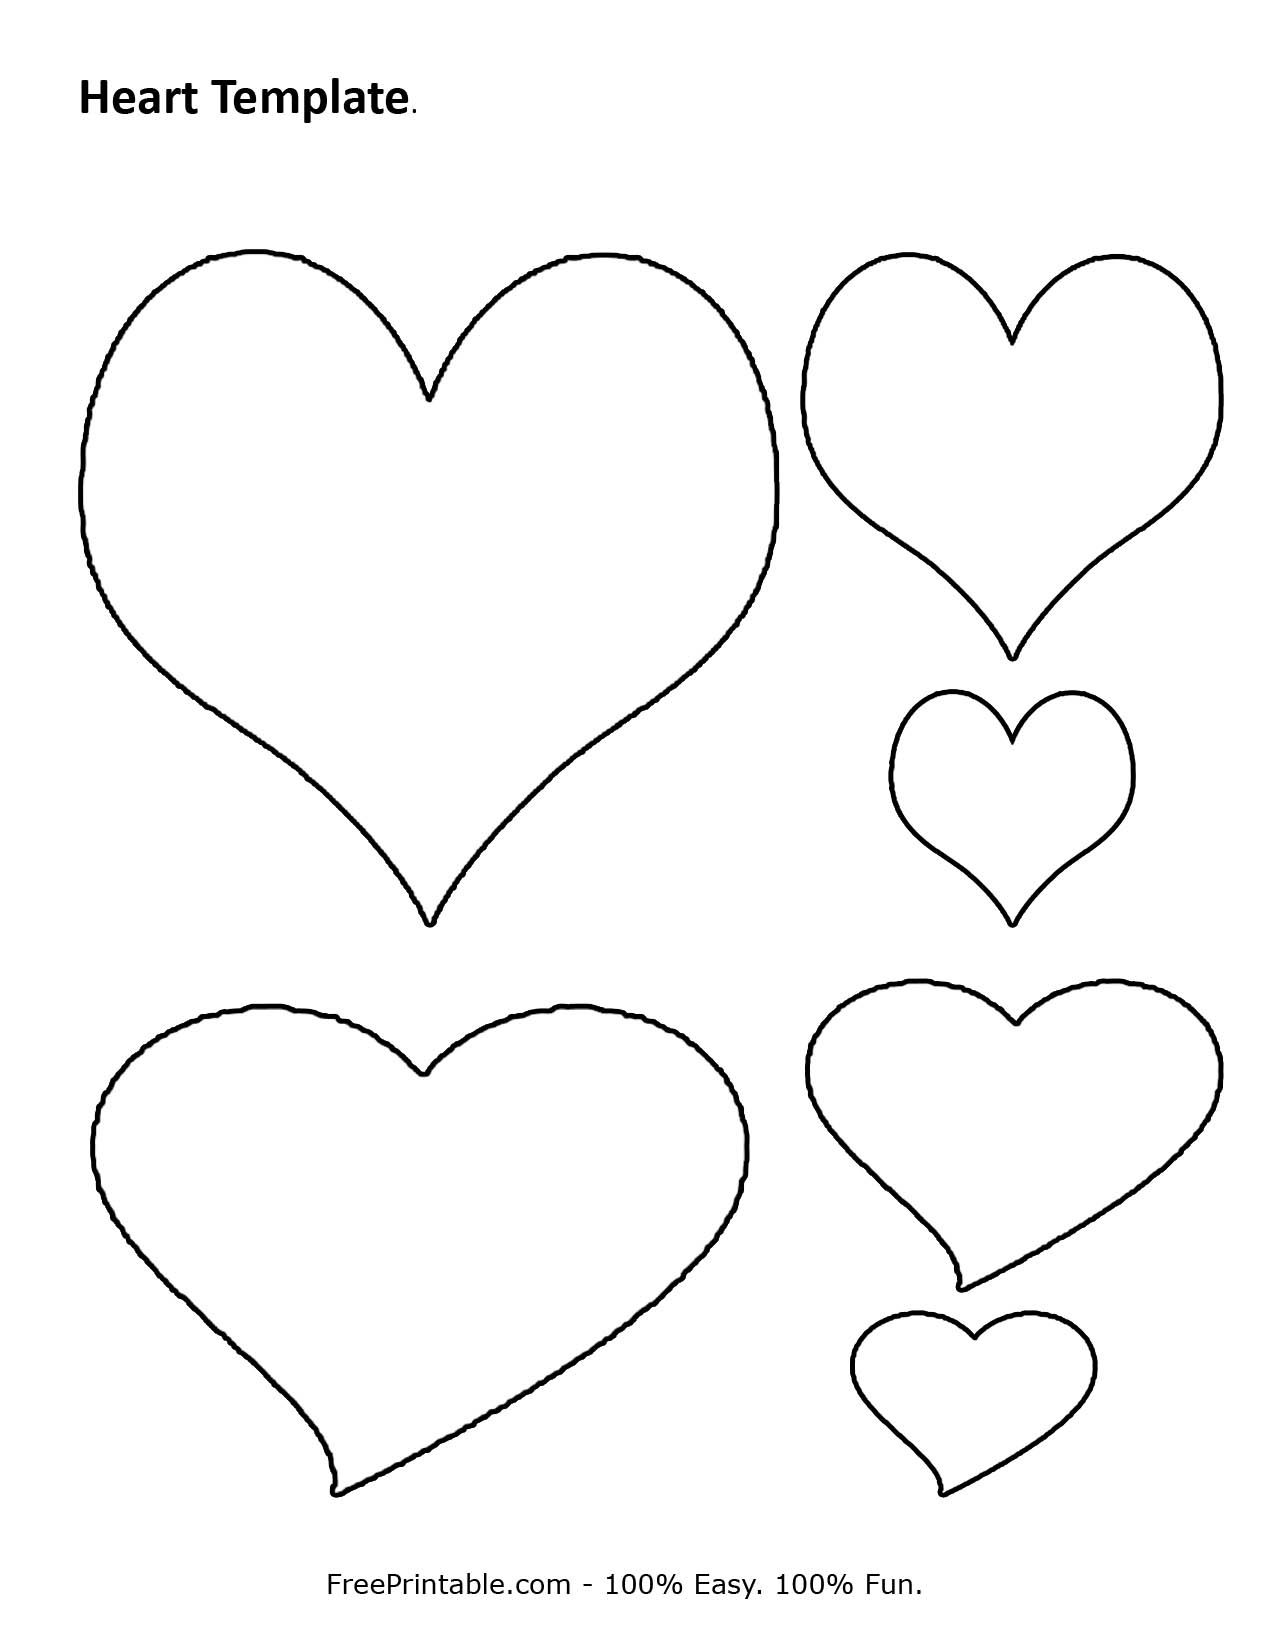 graphic regarding Heart Template Printable named Free of charge Printable Centre Template Cupid Is made up of a Middle Upon Middle